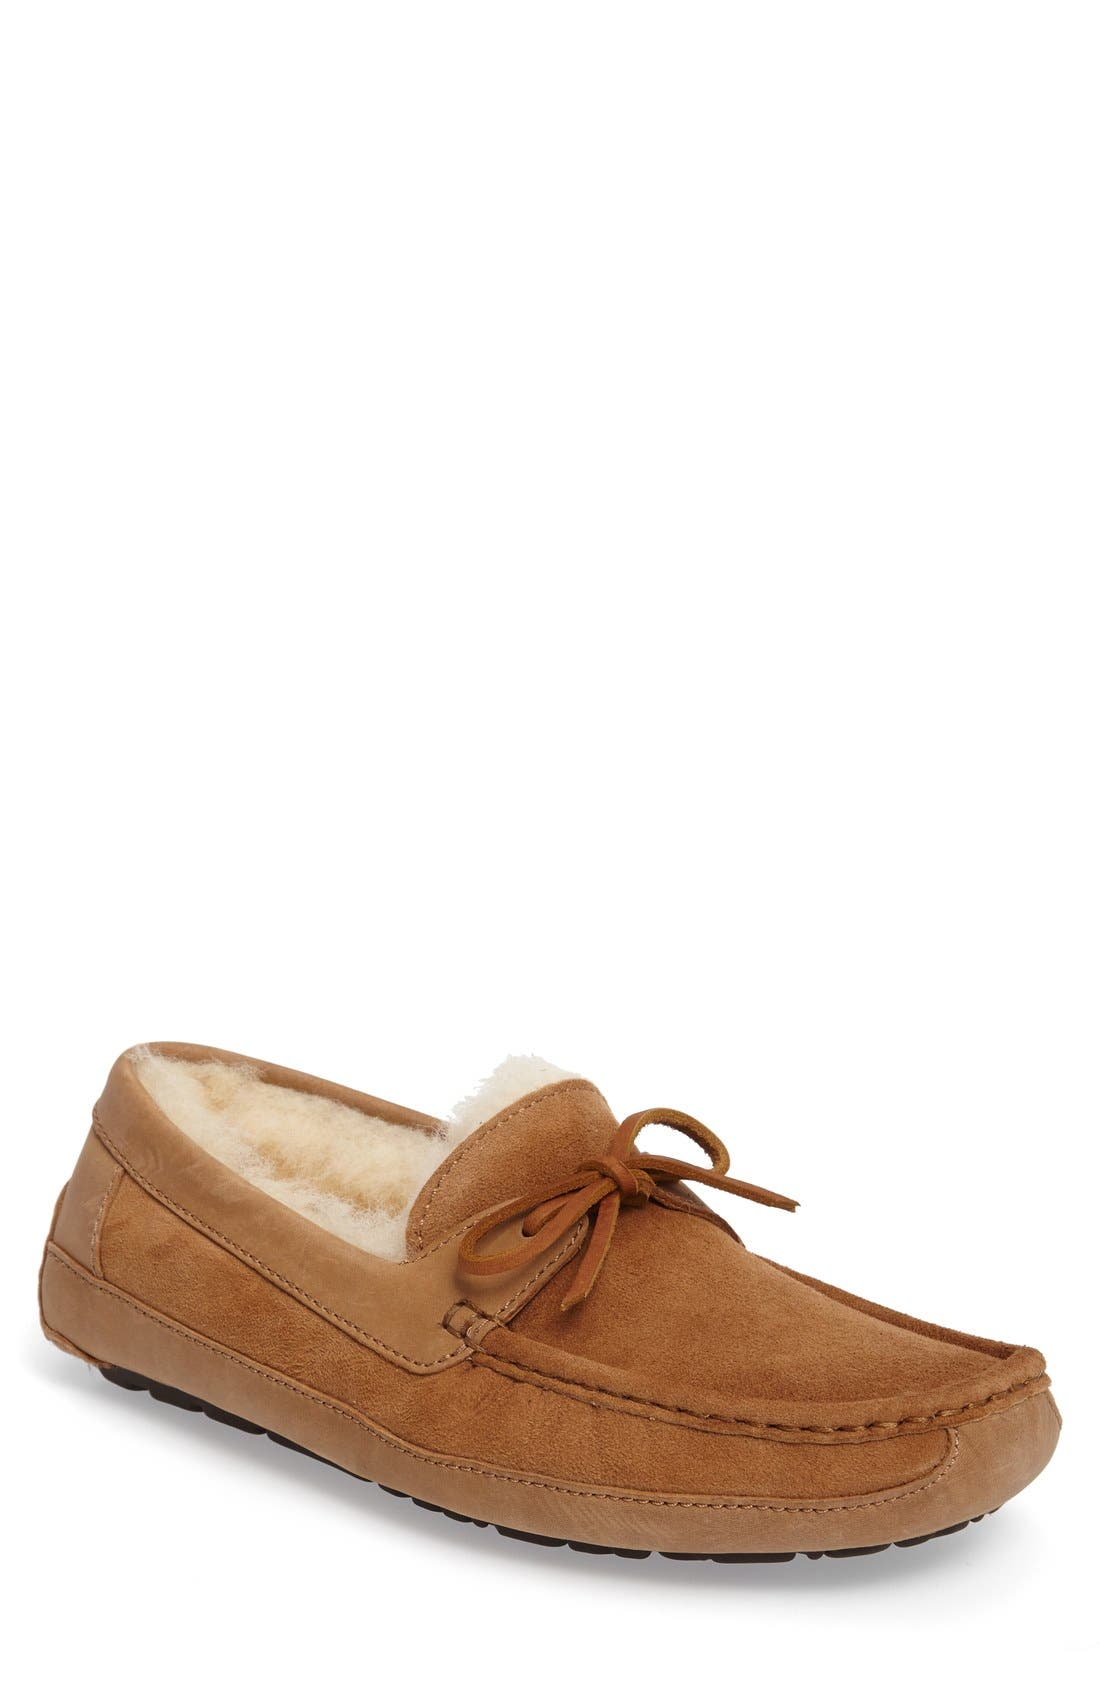 Main Image - UGG® 'Byron' Slipper (Men)